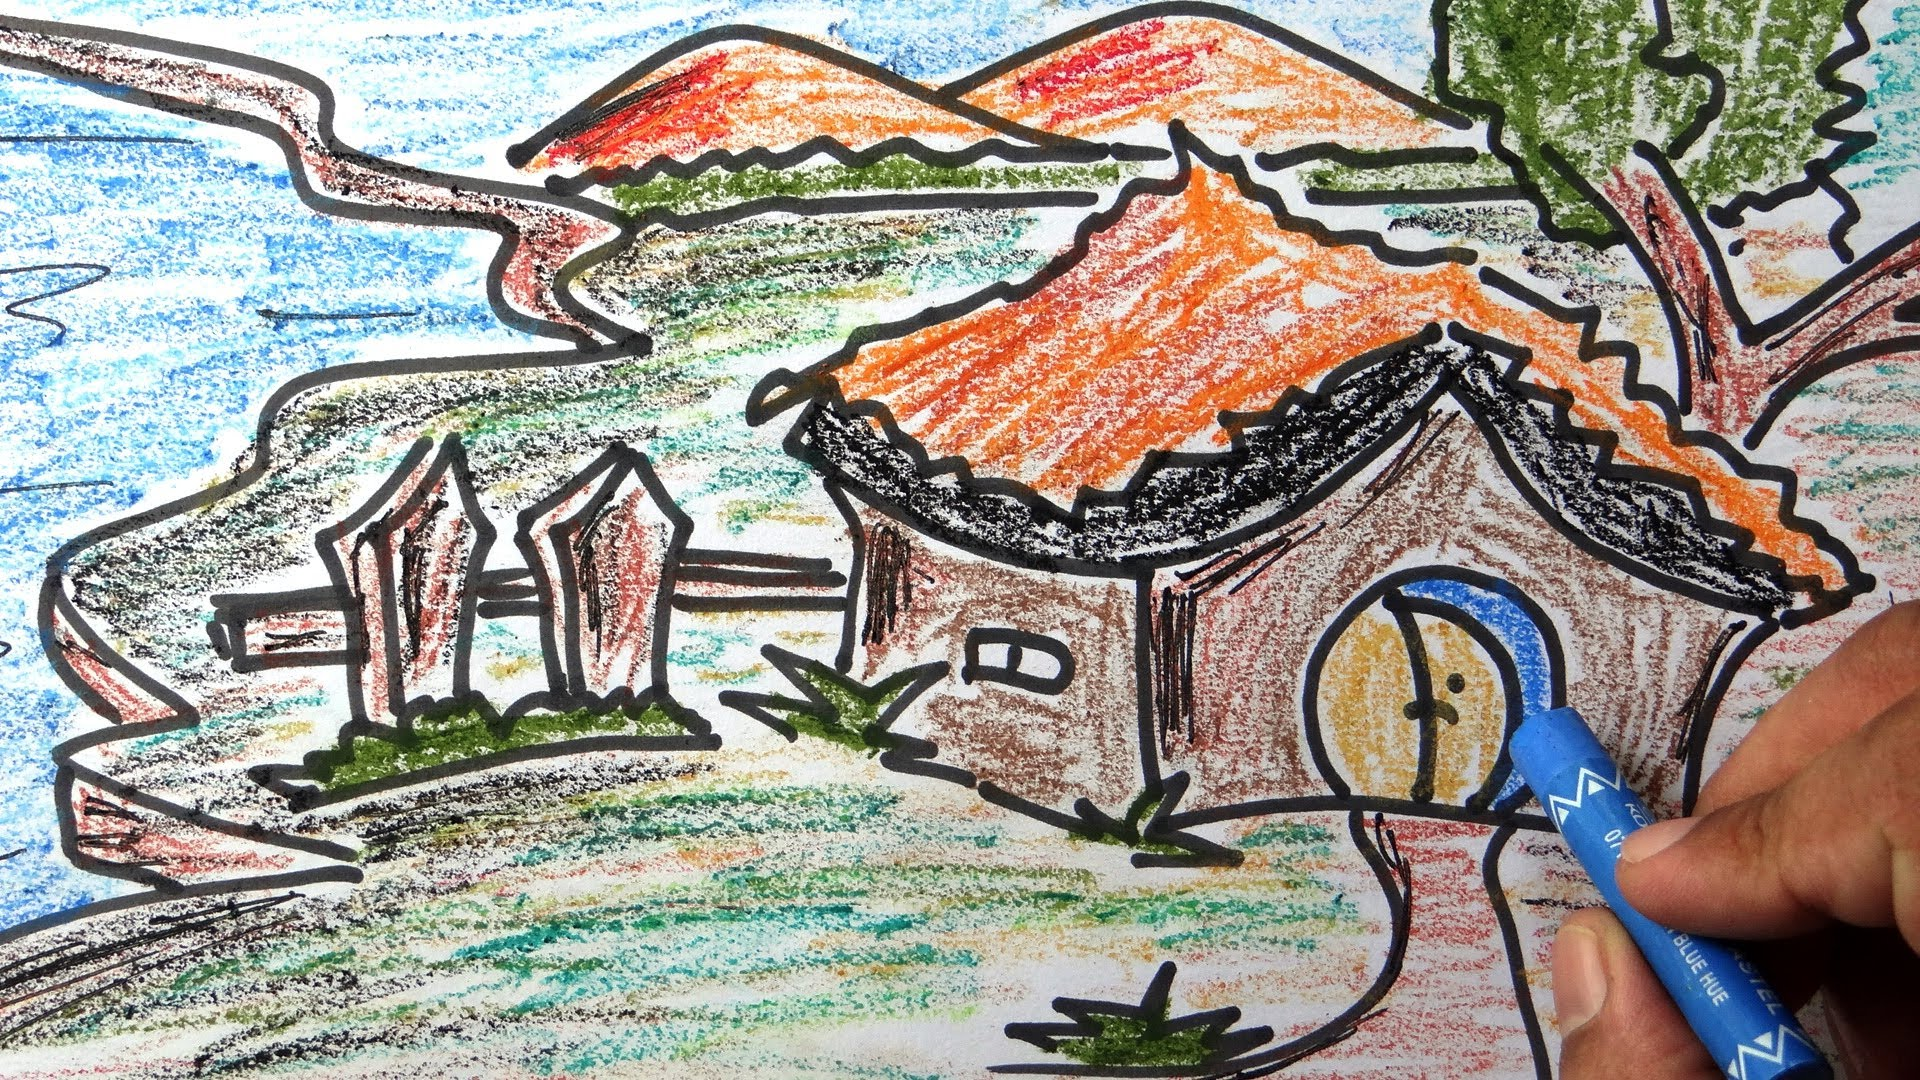 Drawn scenic child Colourful step with wax for